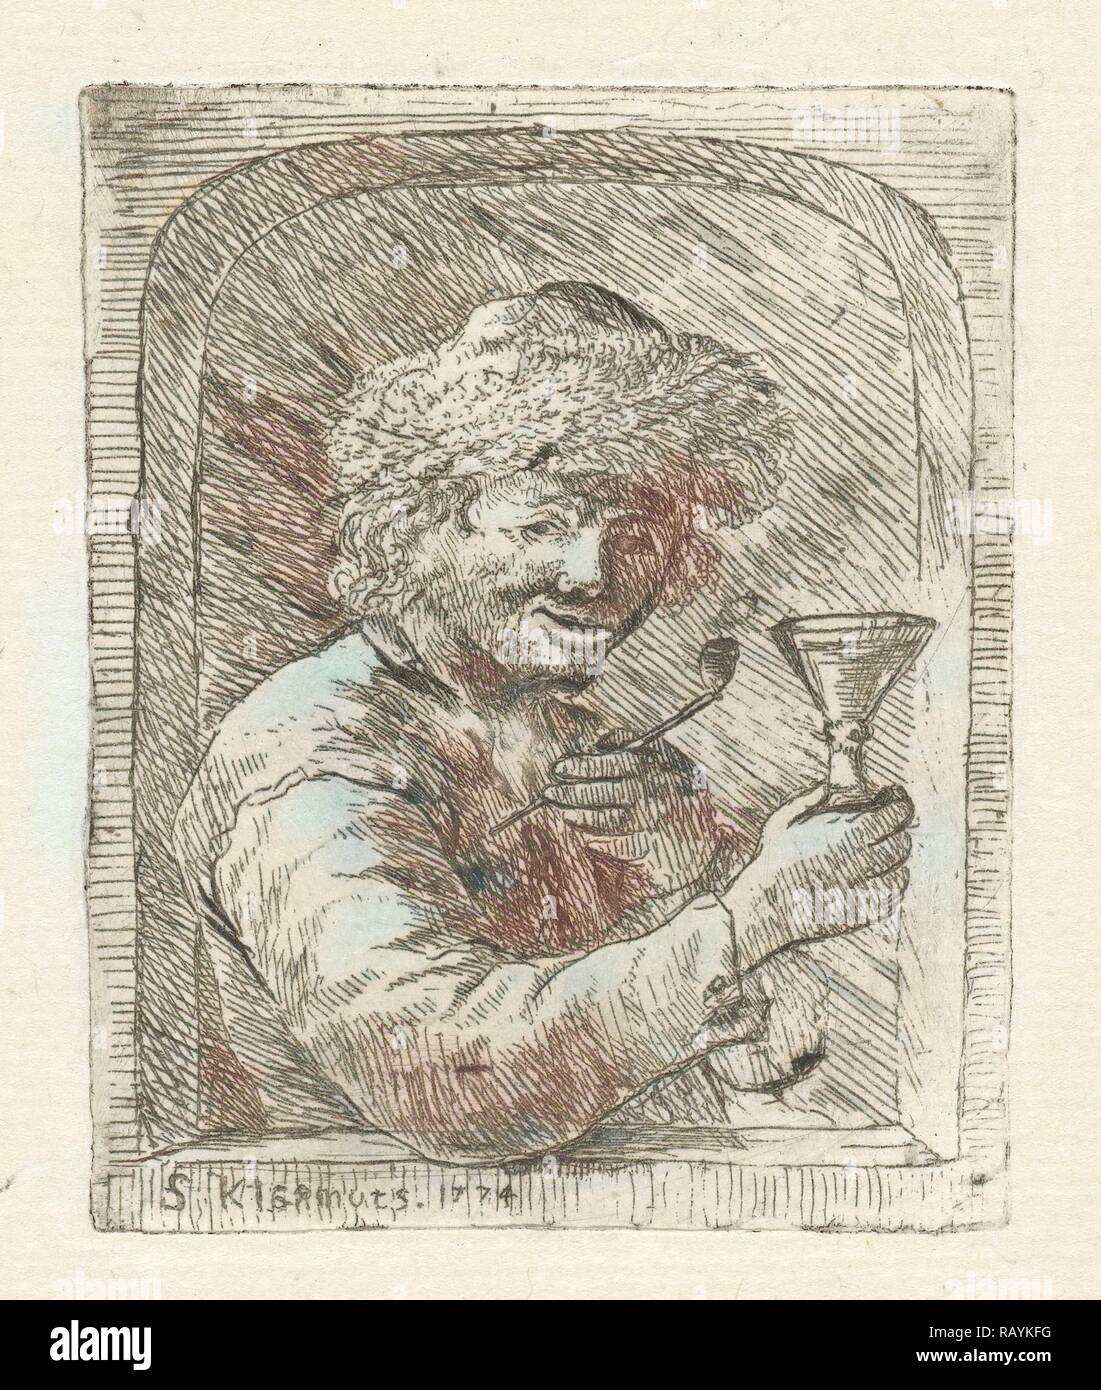 Pipe Smoking drinker, Simon Klapmuts, 1774. Reimagined by Gibon. Classic art with a modern twist reimagined - Stock Image